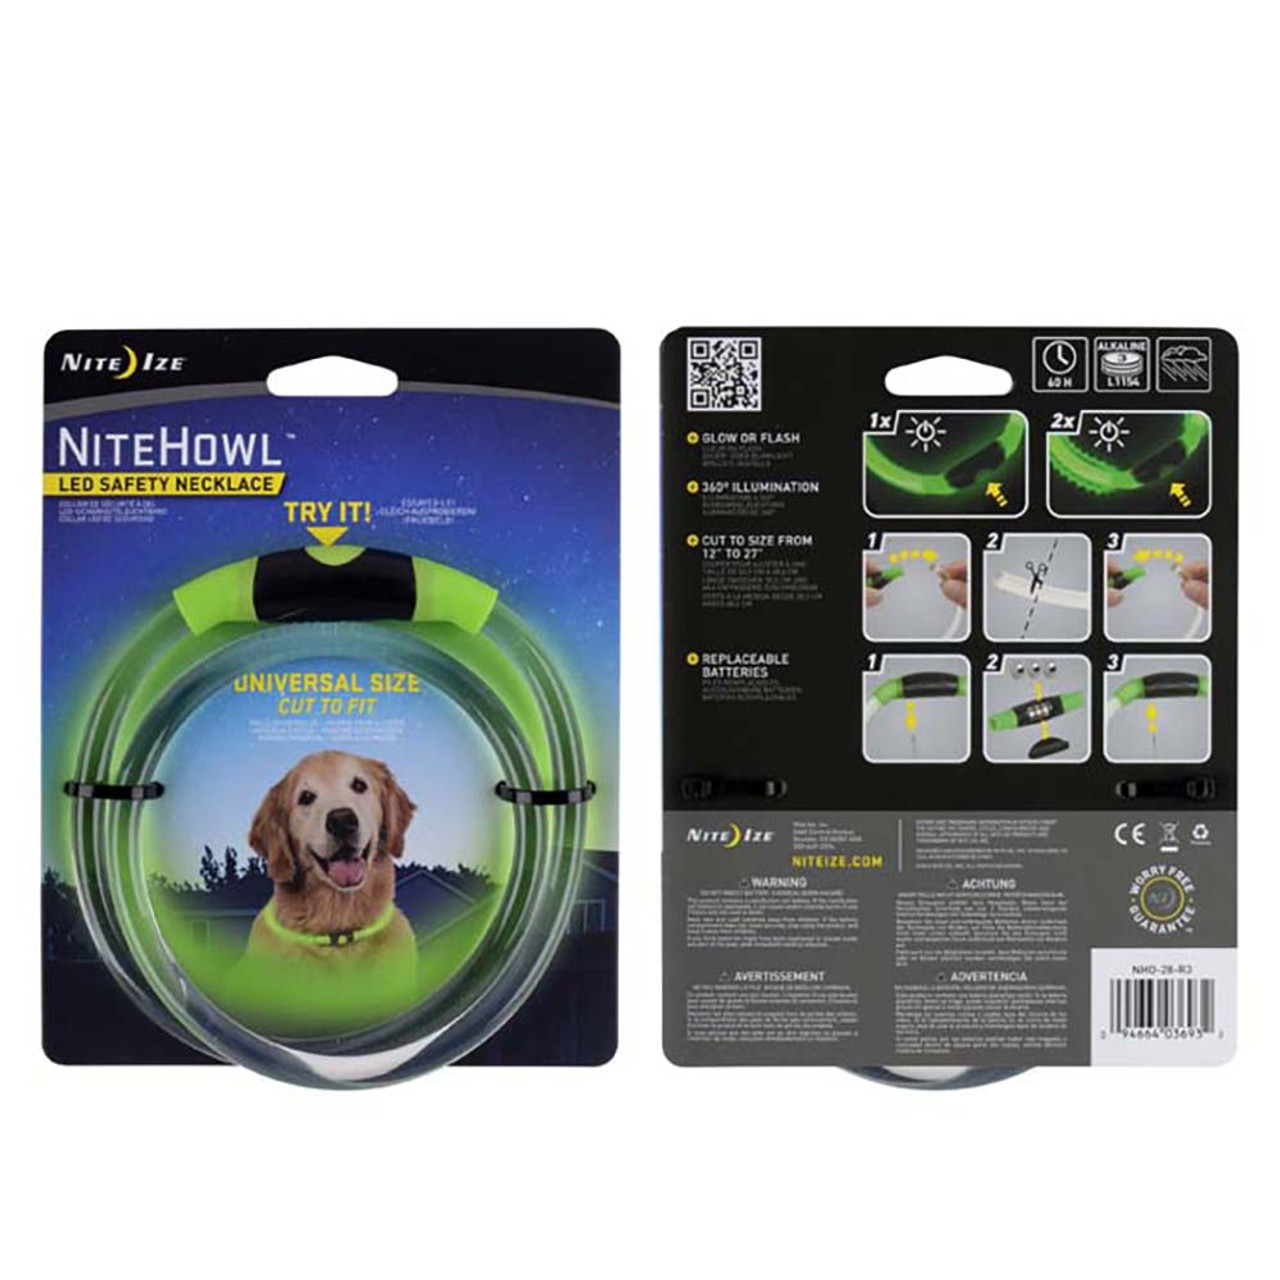 Nite Ize Nitehowl LED Safety Necklace for Dogs